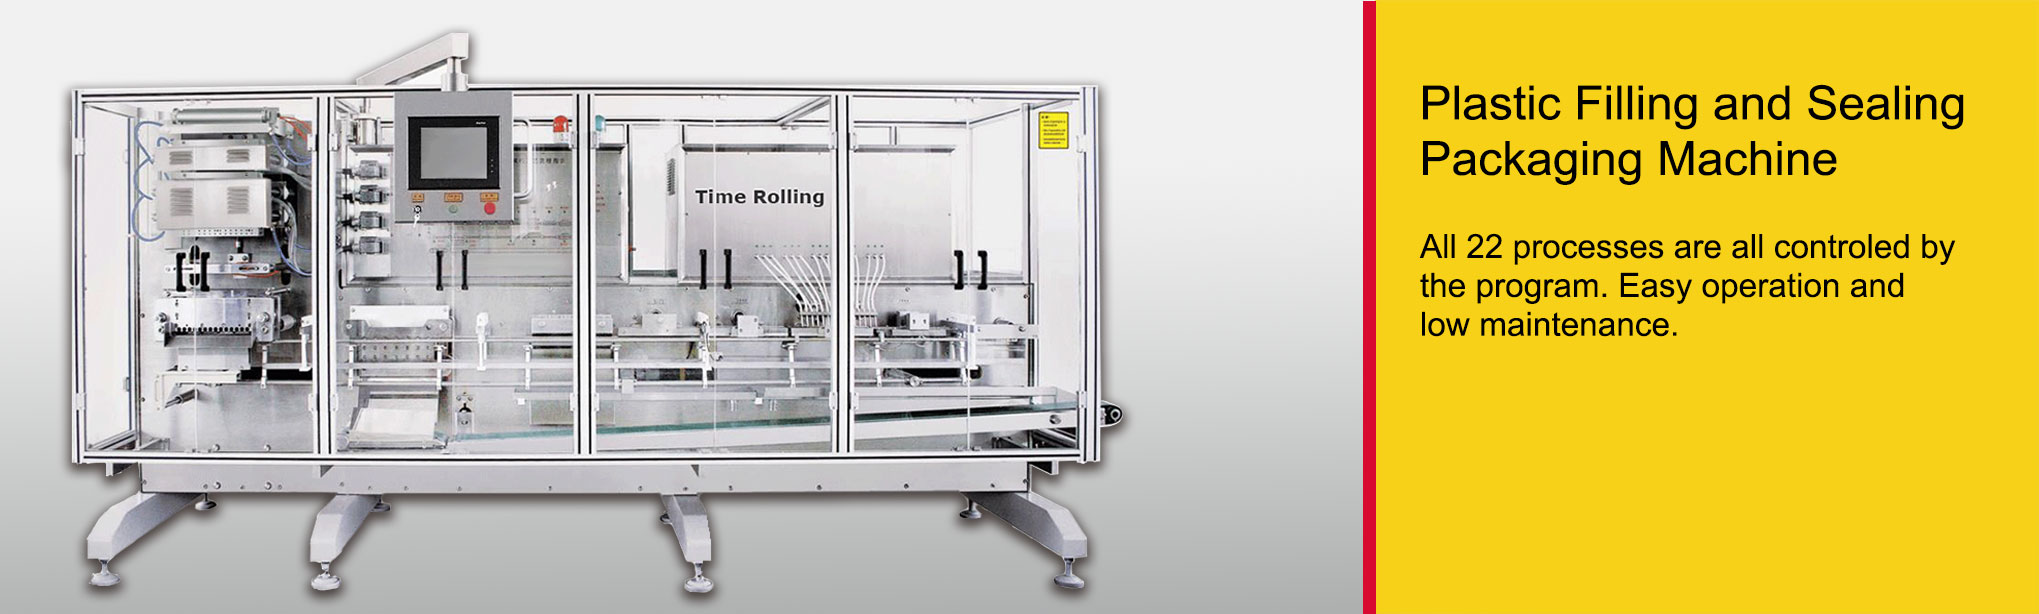 Plastic Filling and Sealing Packaging Machine